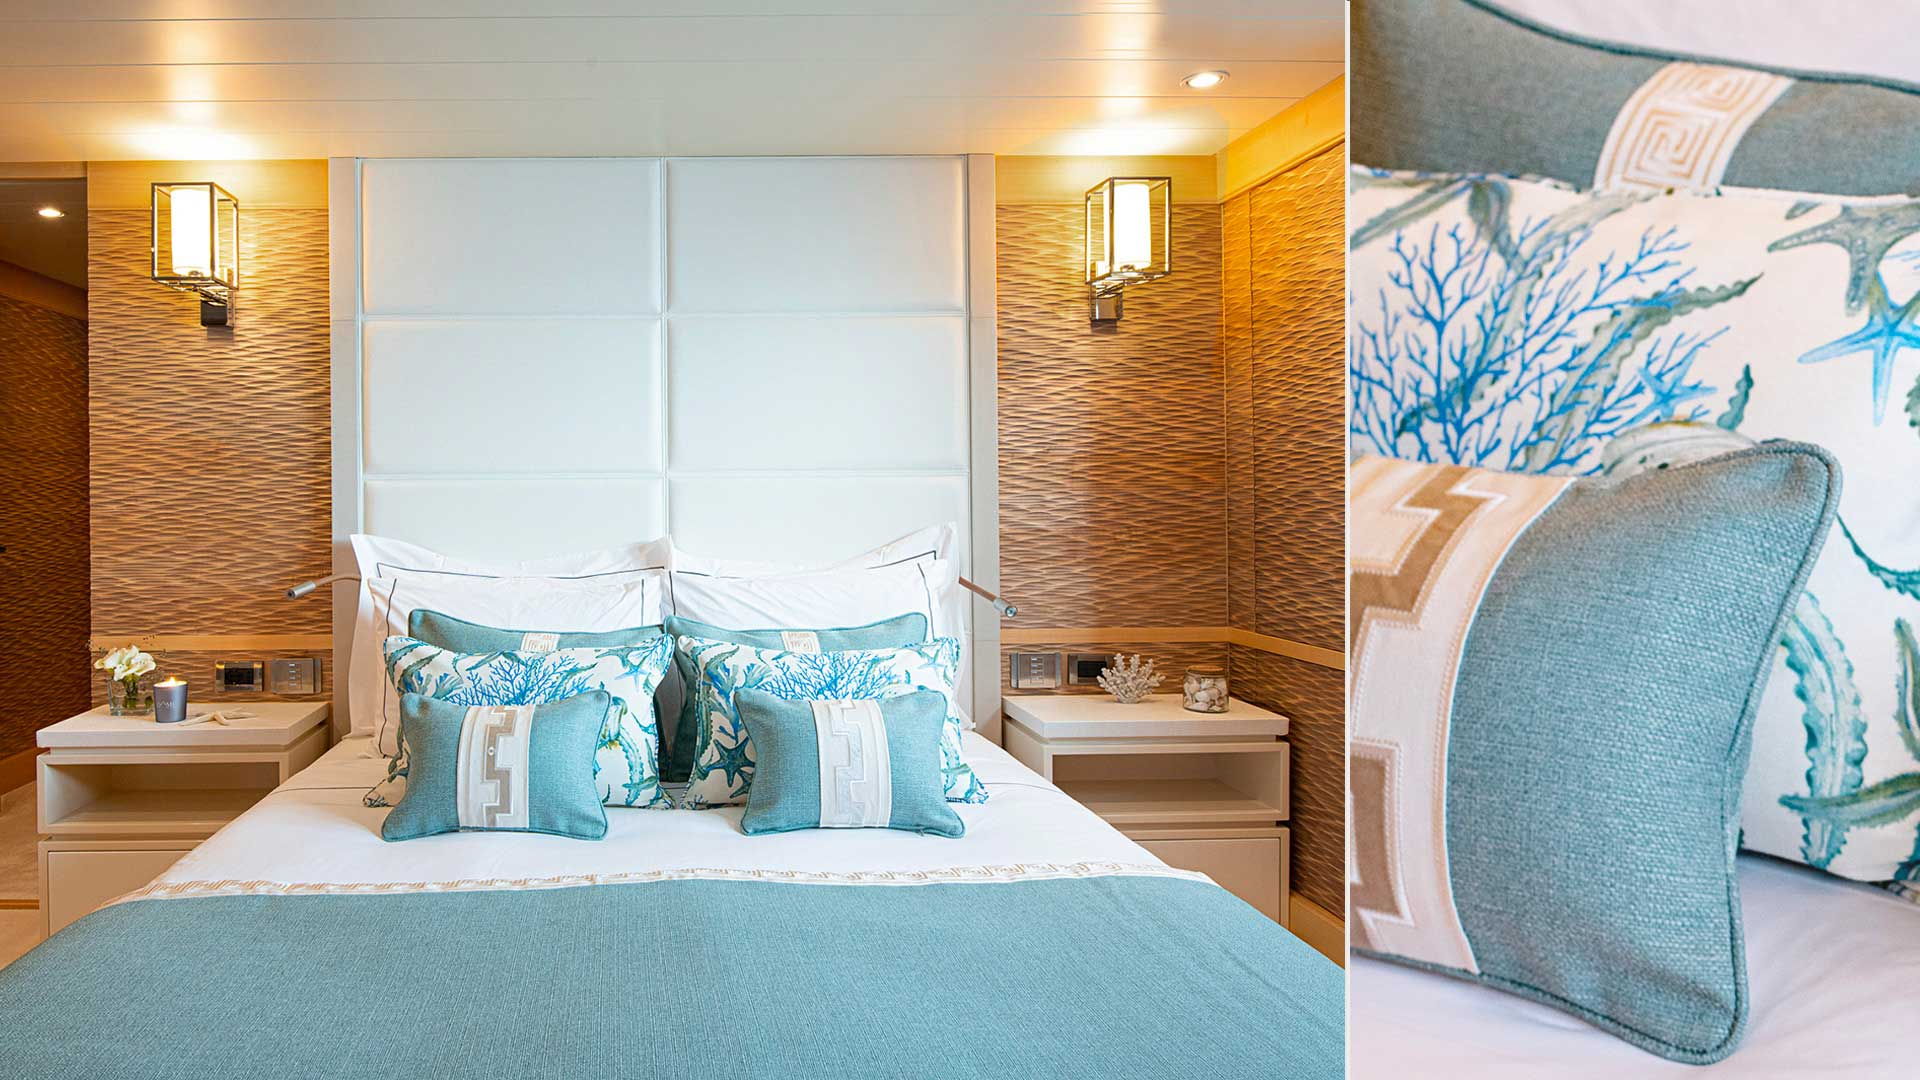 YACHT-REFIT-AMELS-LIMITED-EDITION-20-Dome-interior-design-Geneve-Suisse